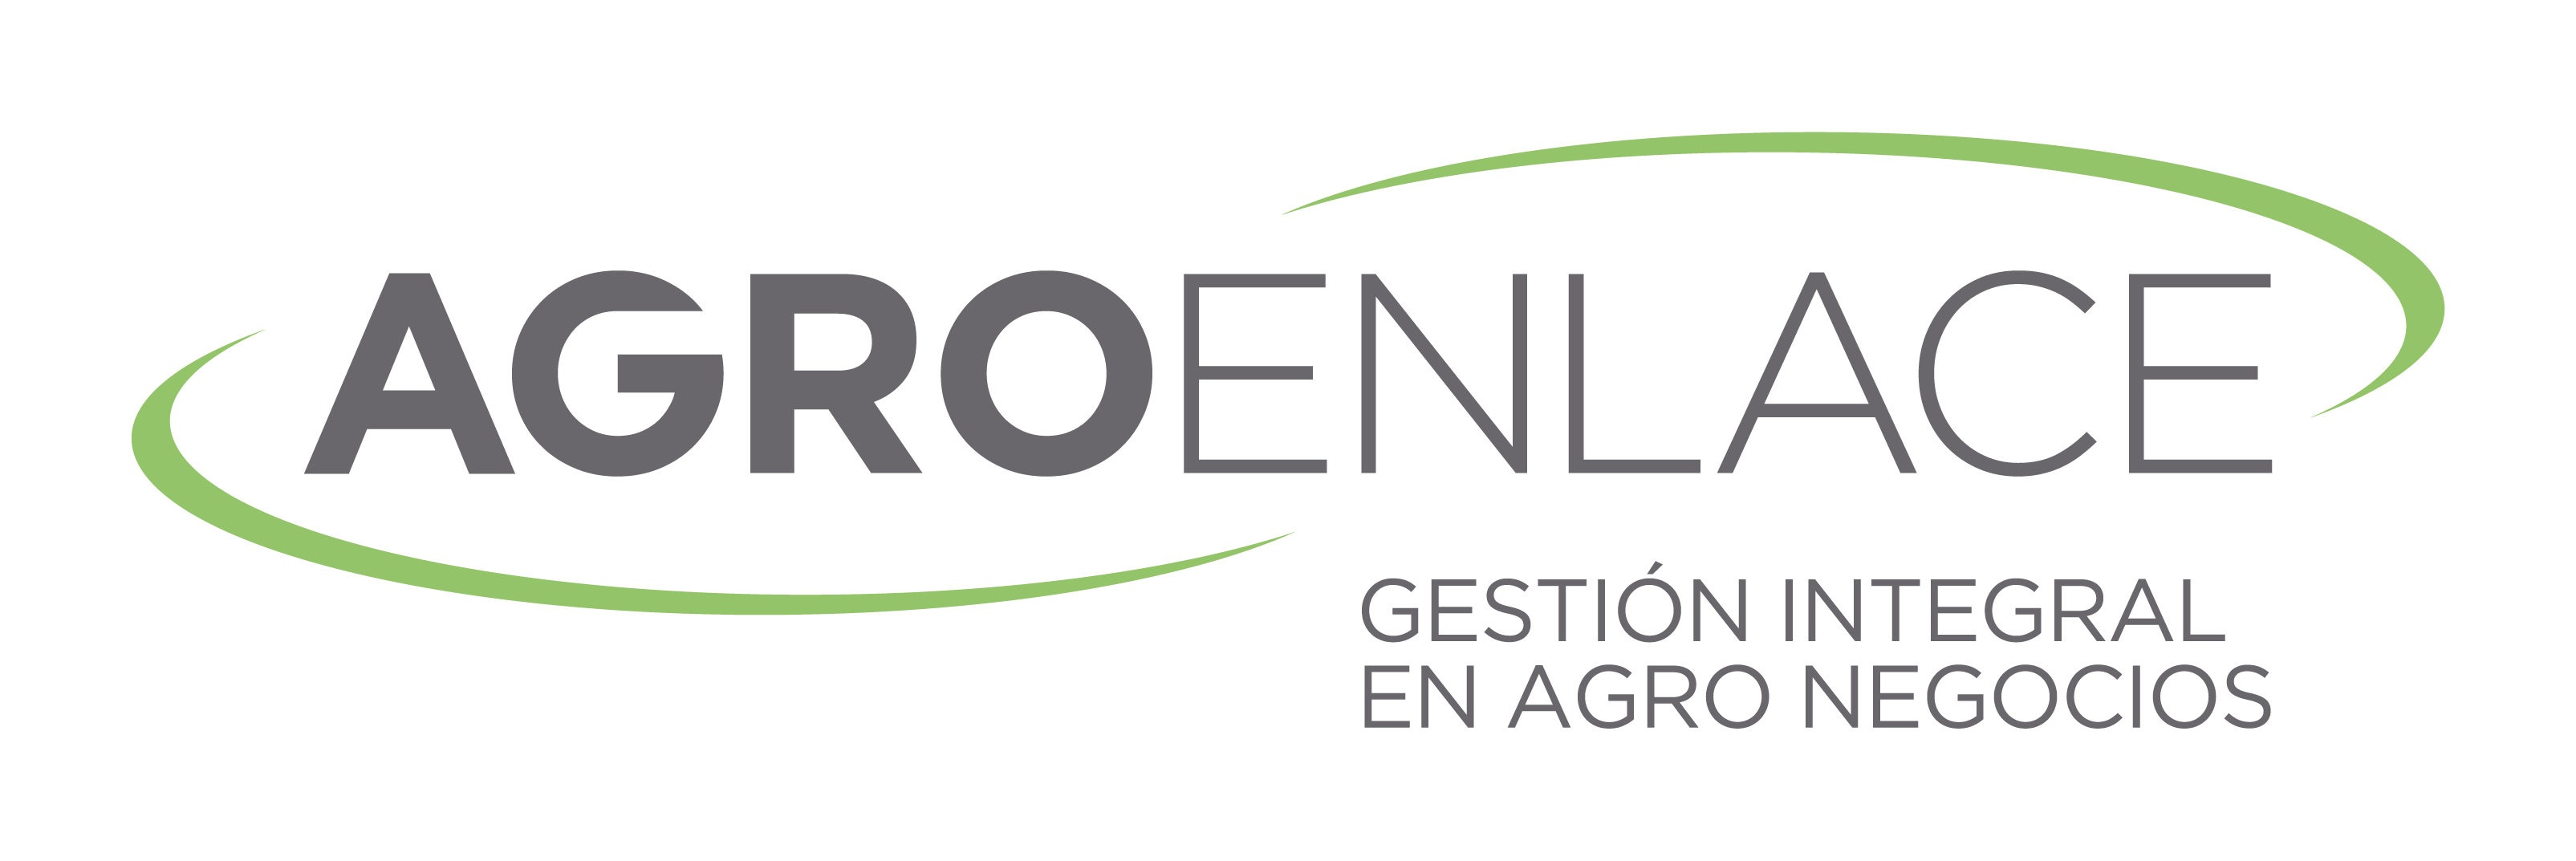 Agroenlace